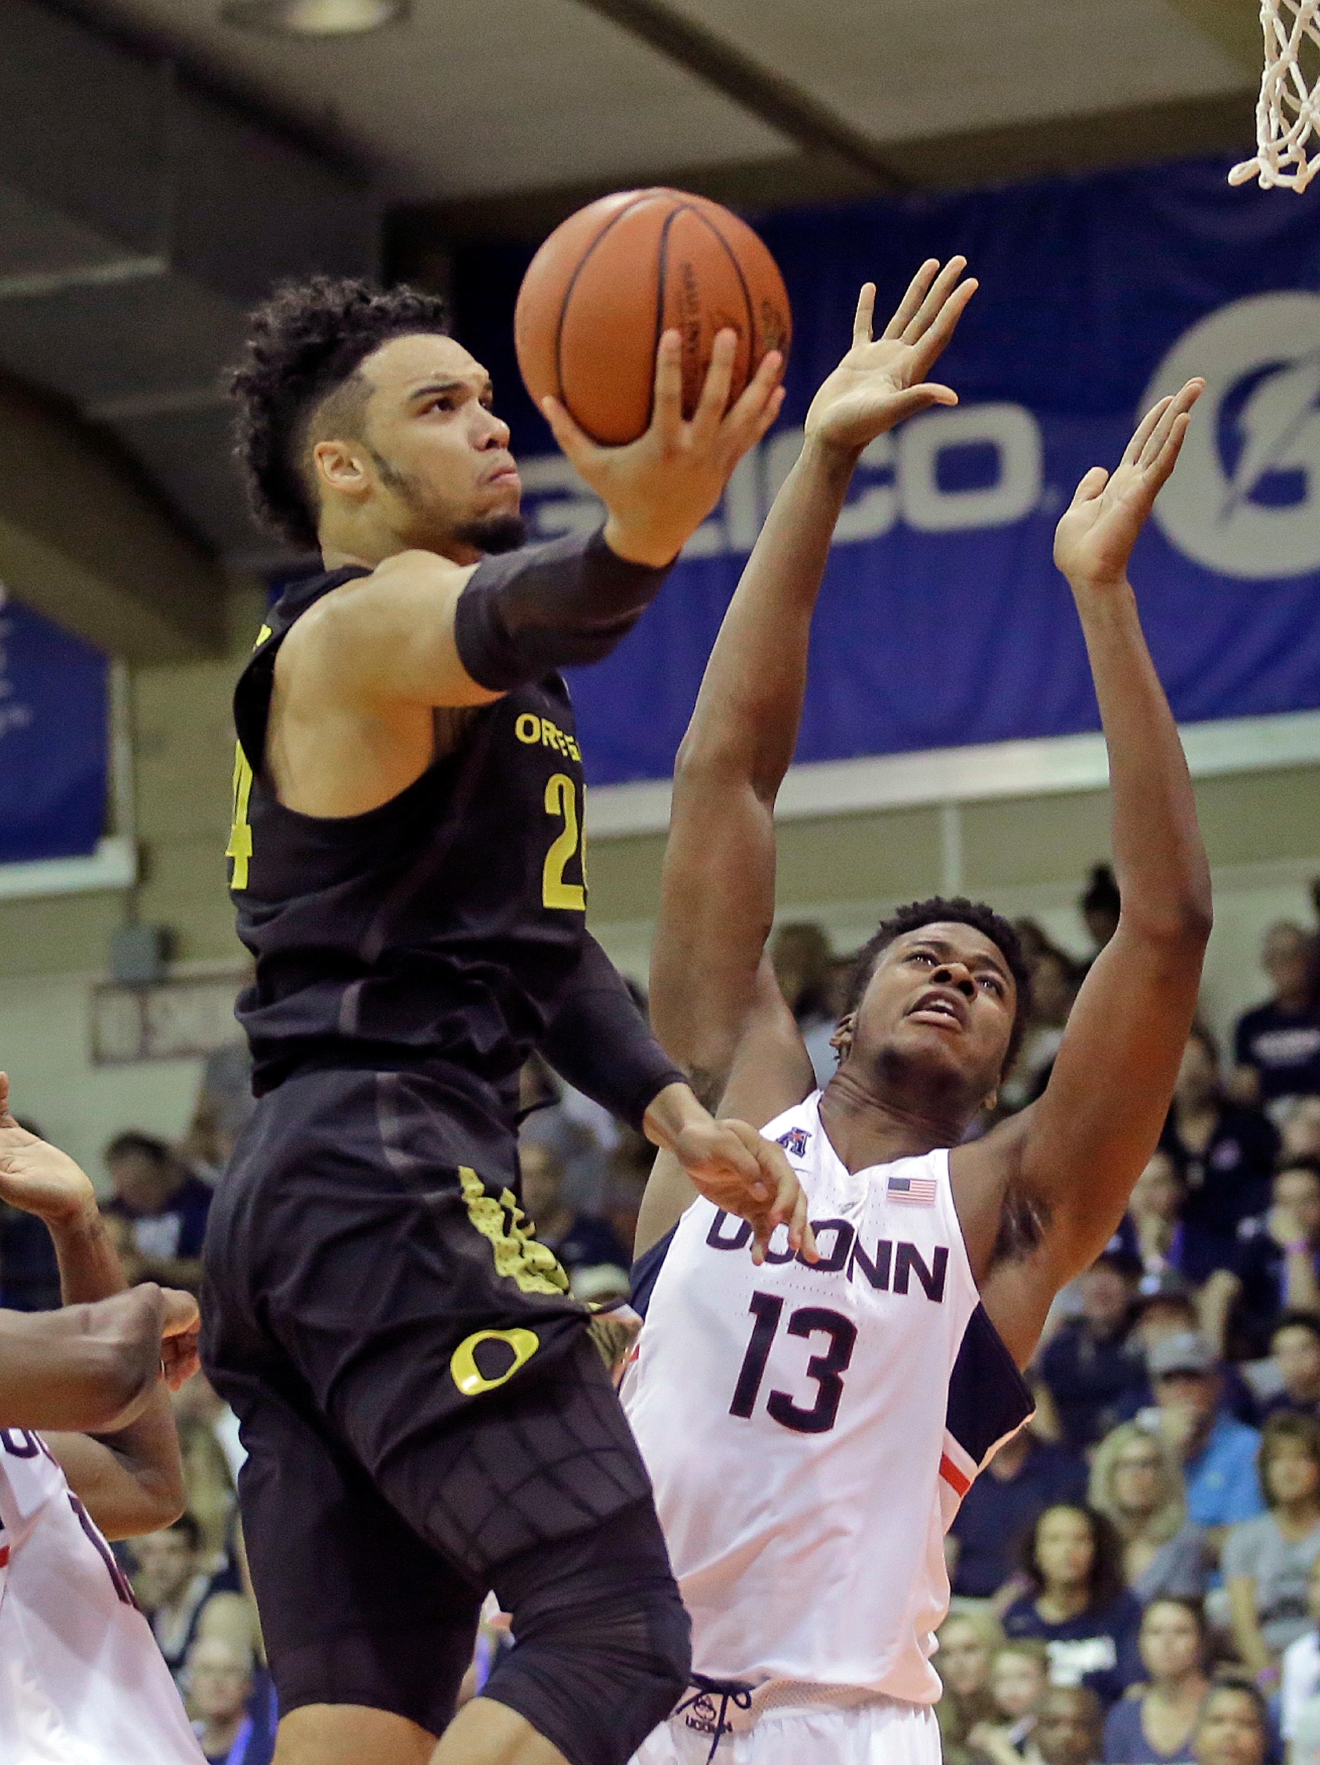 Oregon forward Dillon Brooks (24) goes to the basket as Connecticut forward Steven Enoch (13) defends in the first half during an NCAA college basketball game in the Maui Invitational, Wednesday, Nov. 23, 2016, in Lahaina, Hawaii. (AP Photo/Rick Bowmer)